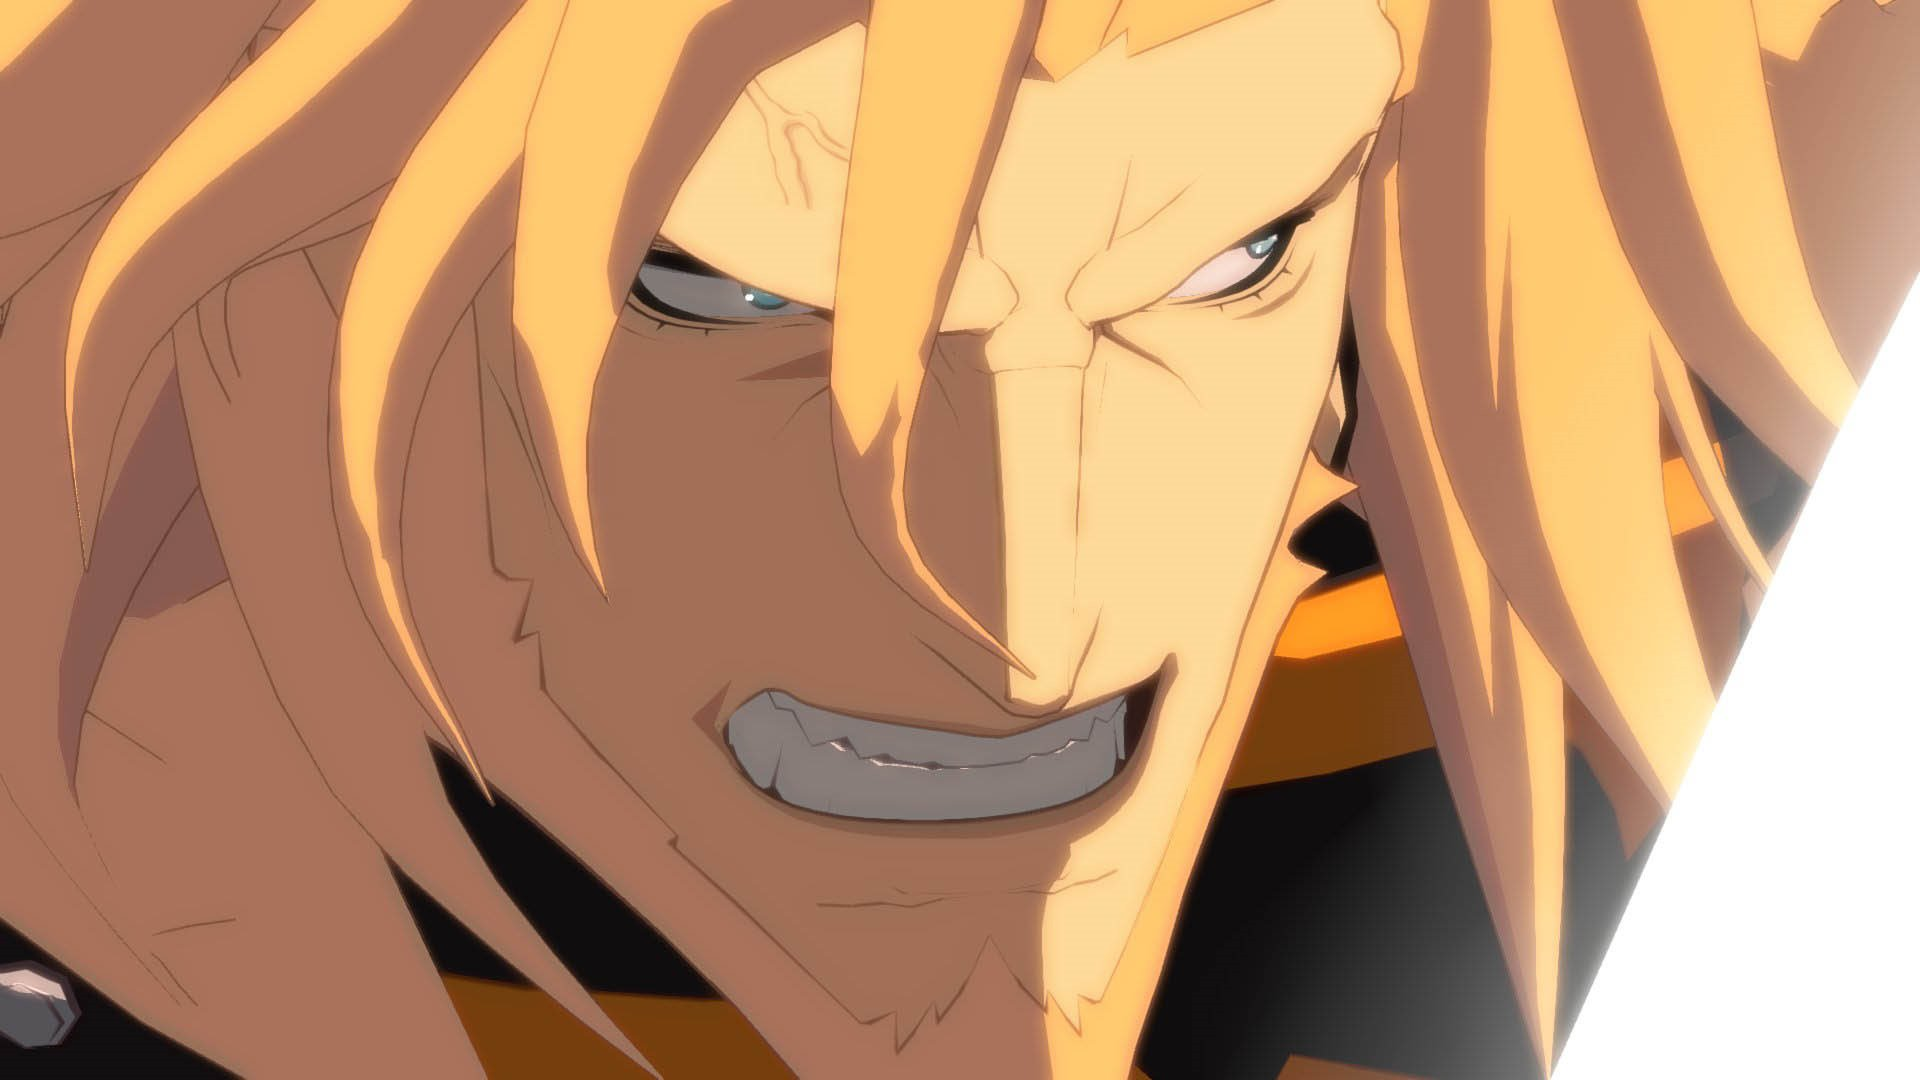 Guilty Gear: Leo Whitefang HQ wallpapers